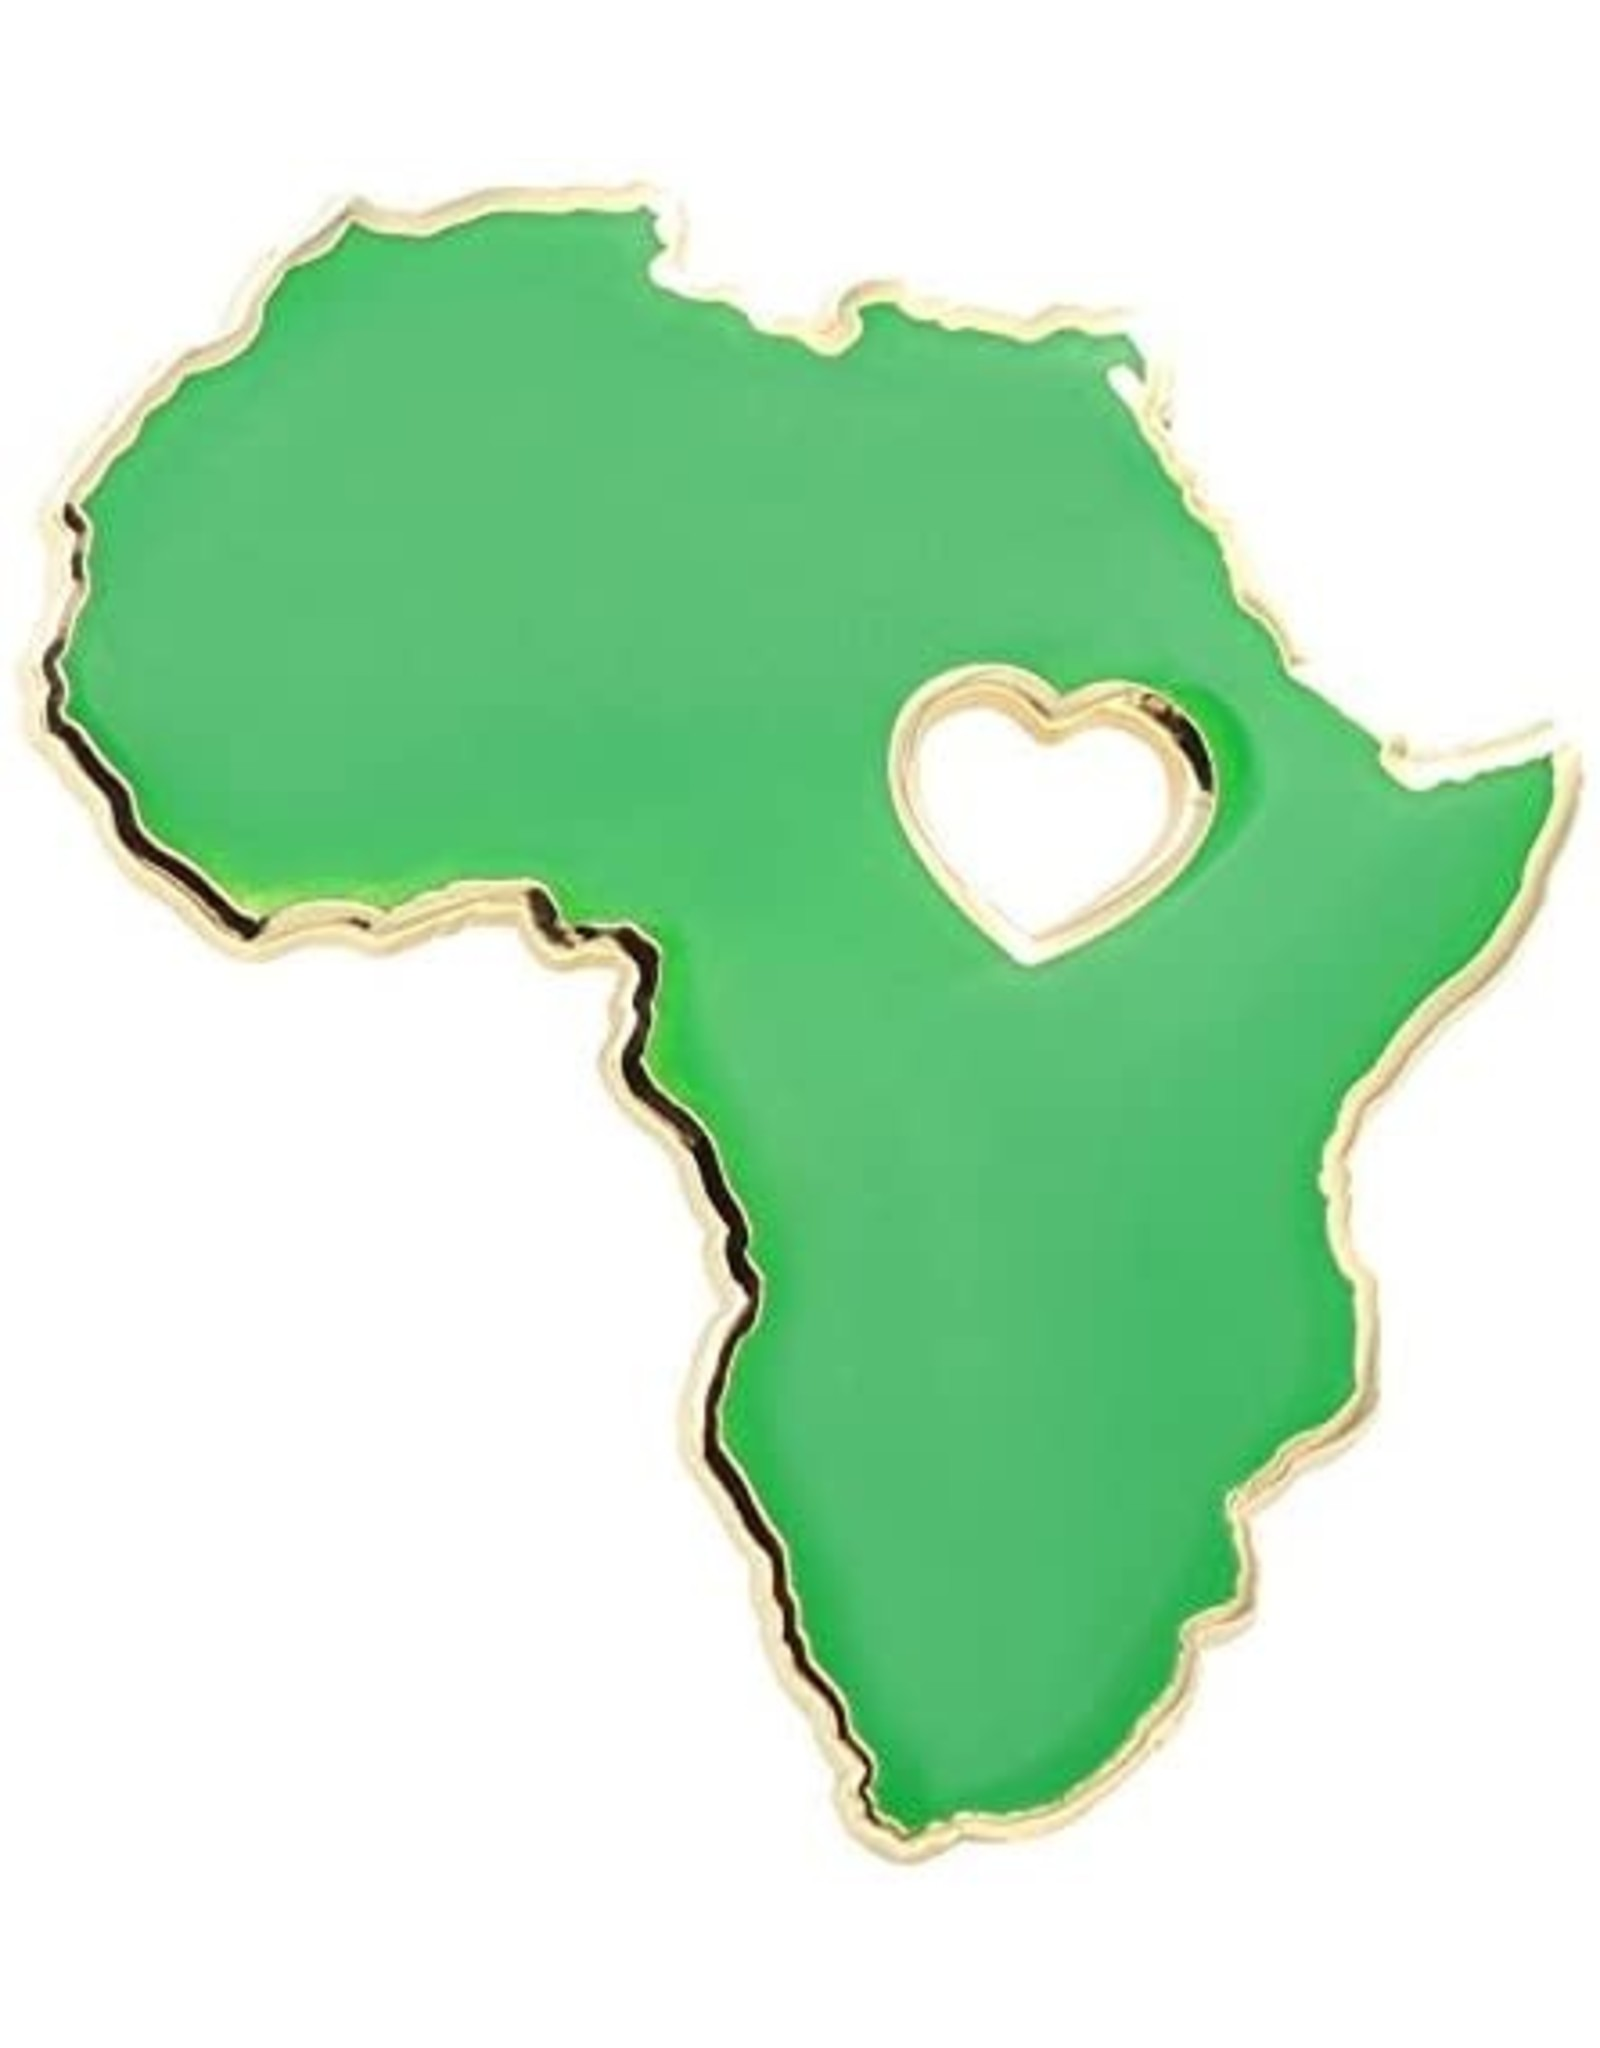 REAL SIC HEART OF AFRICA LAPEL PIN